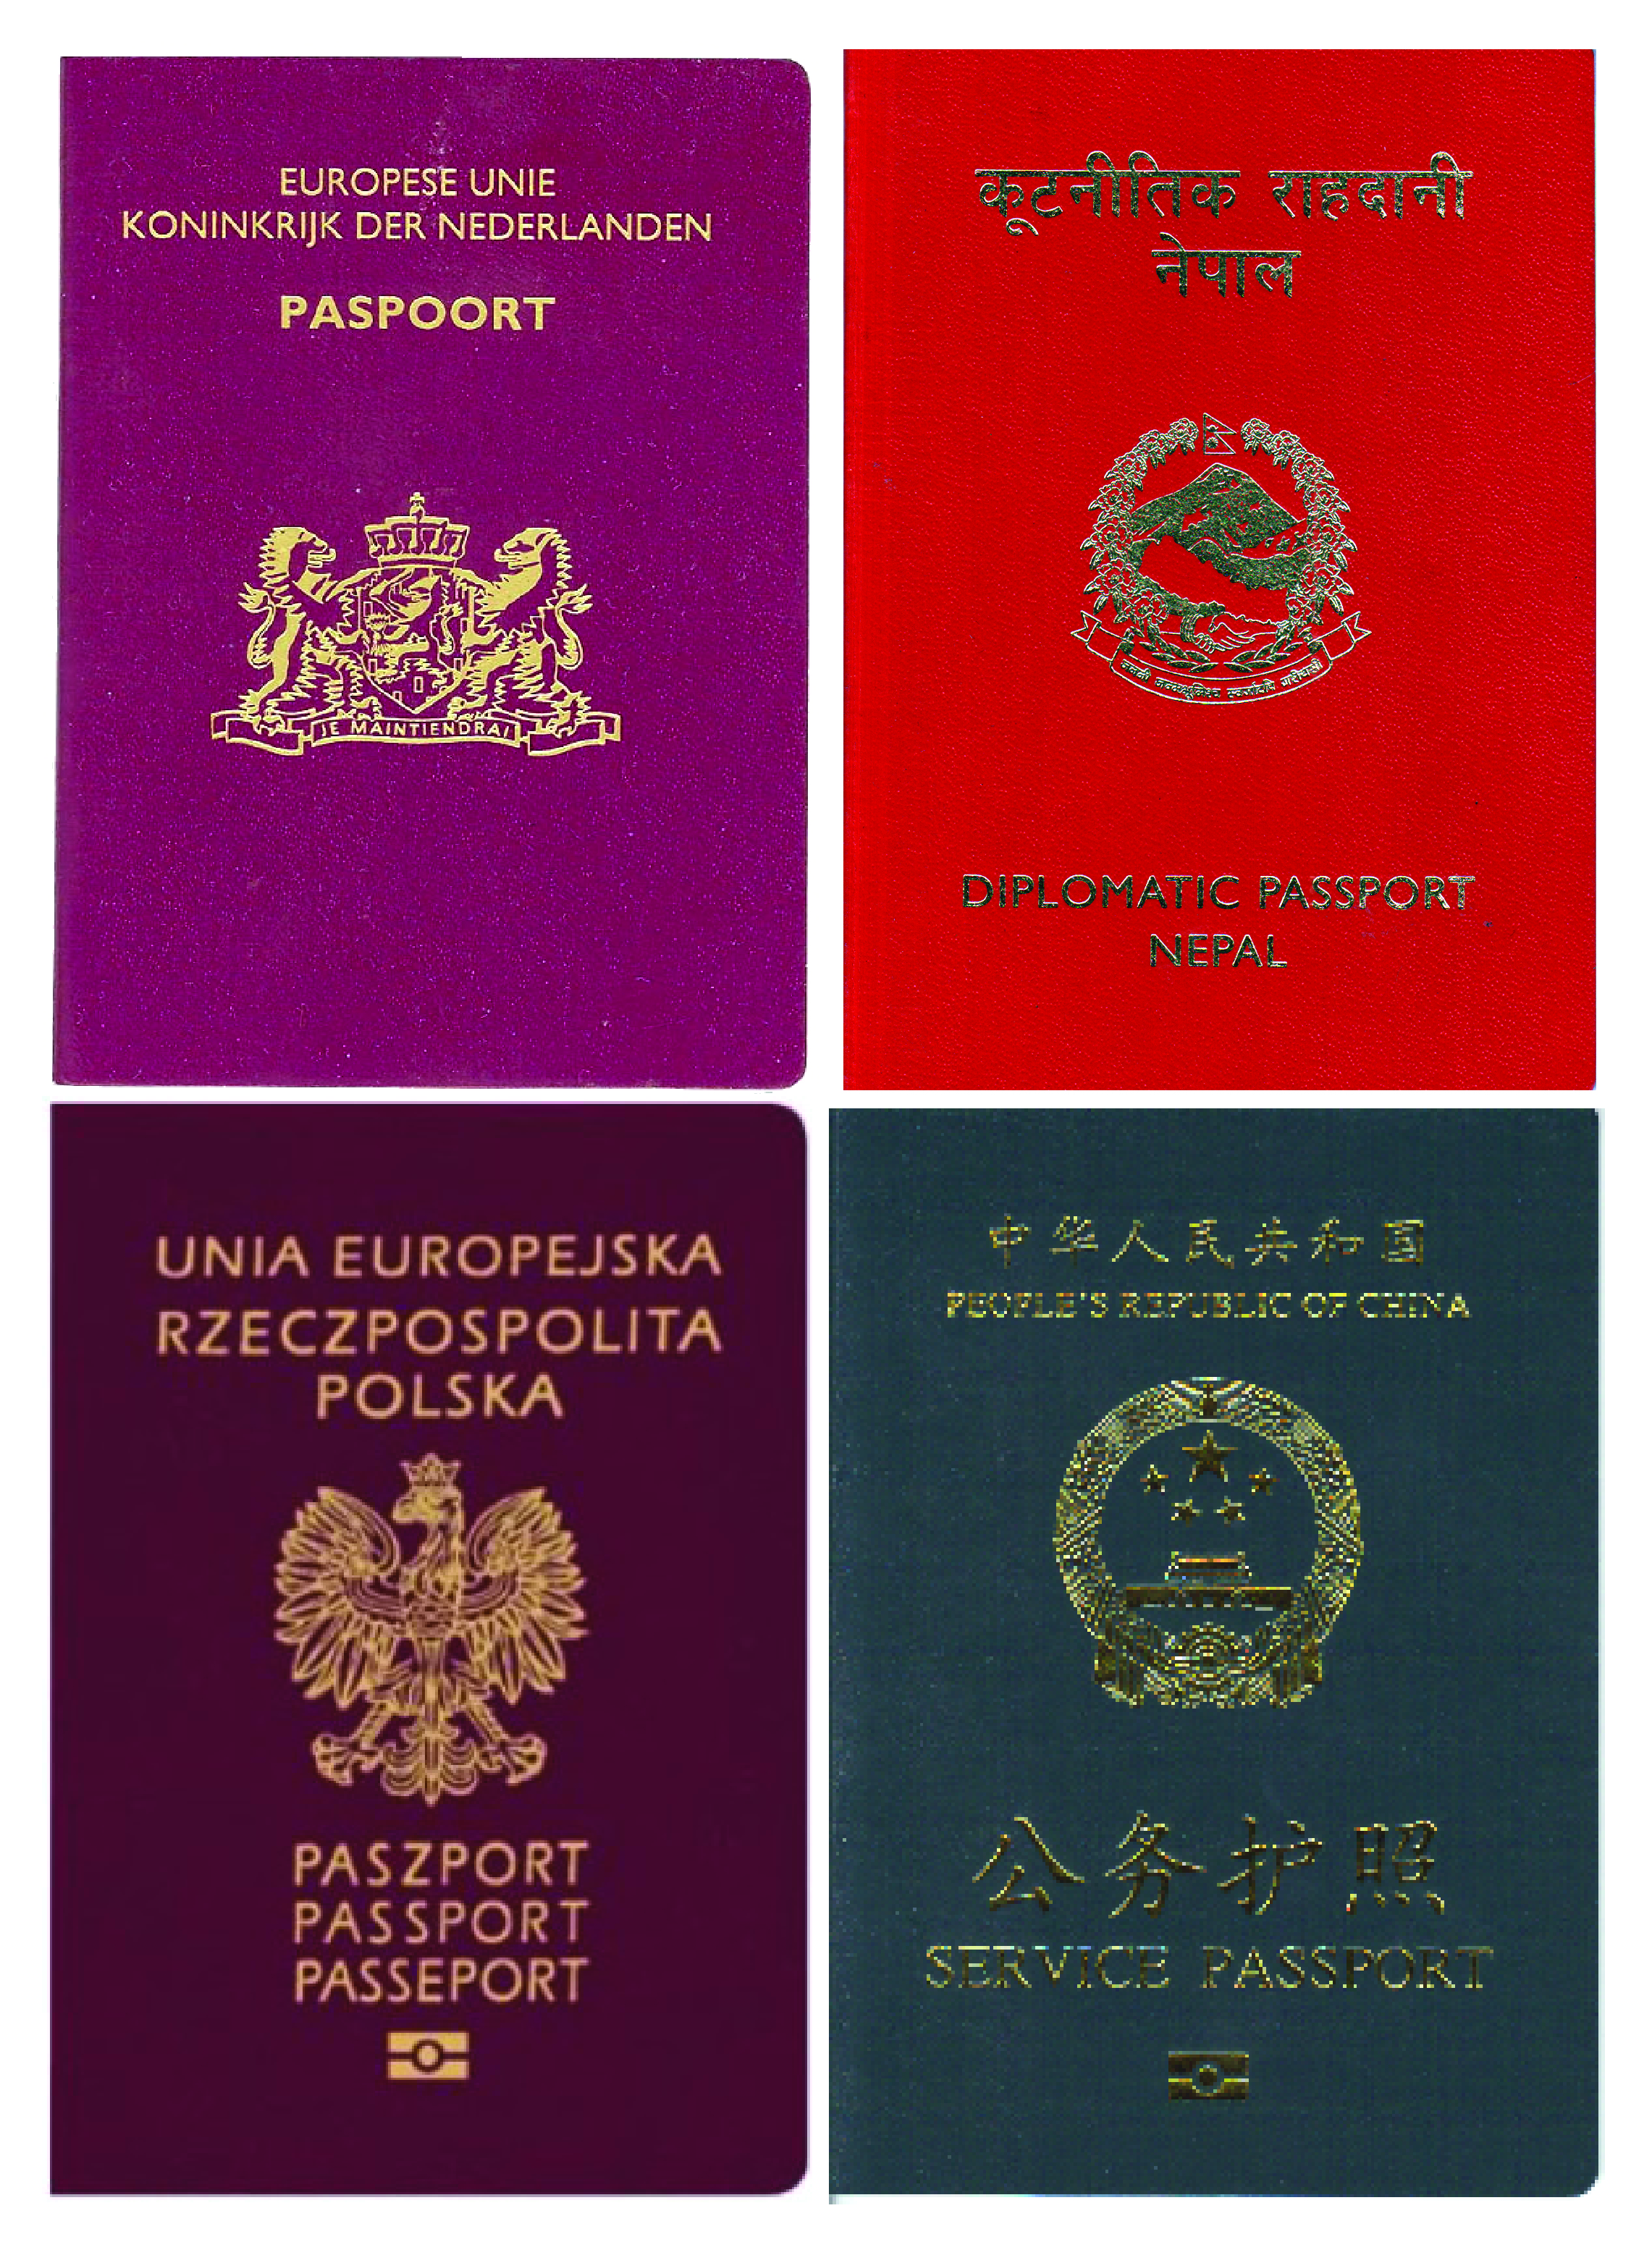 Passport - Wikipedia